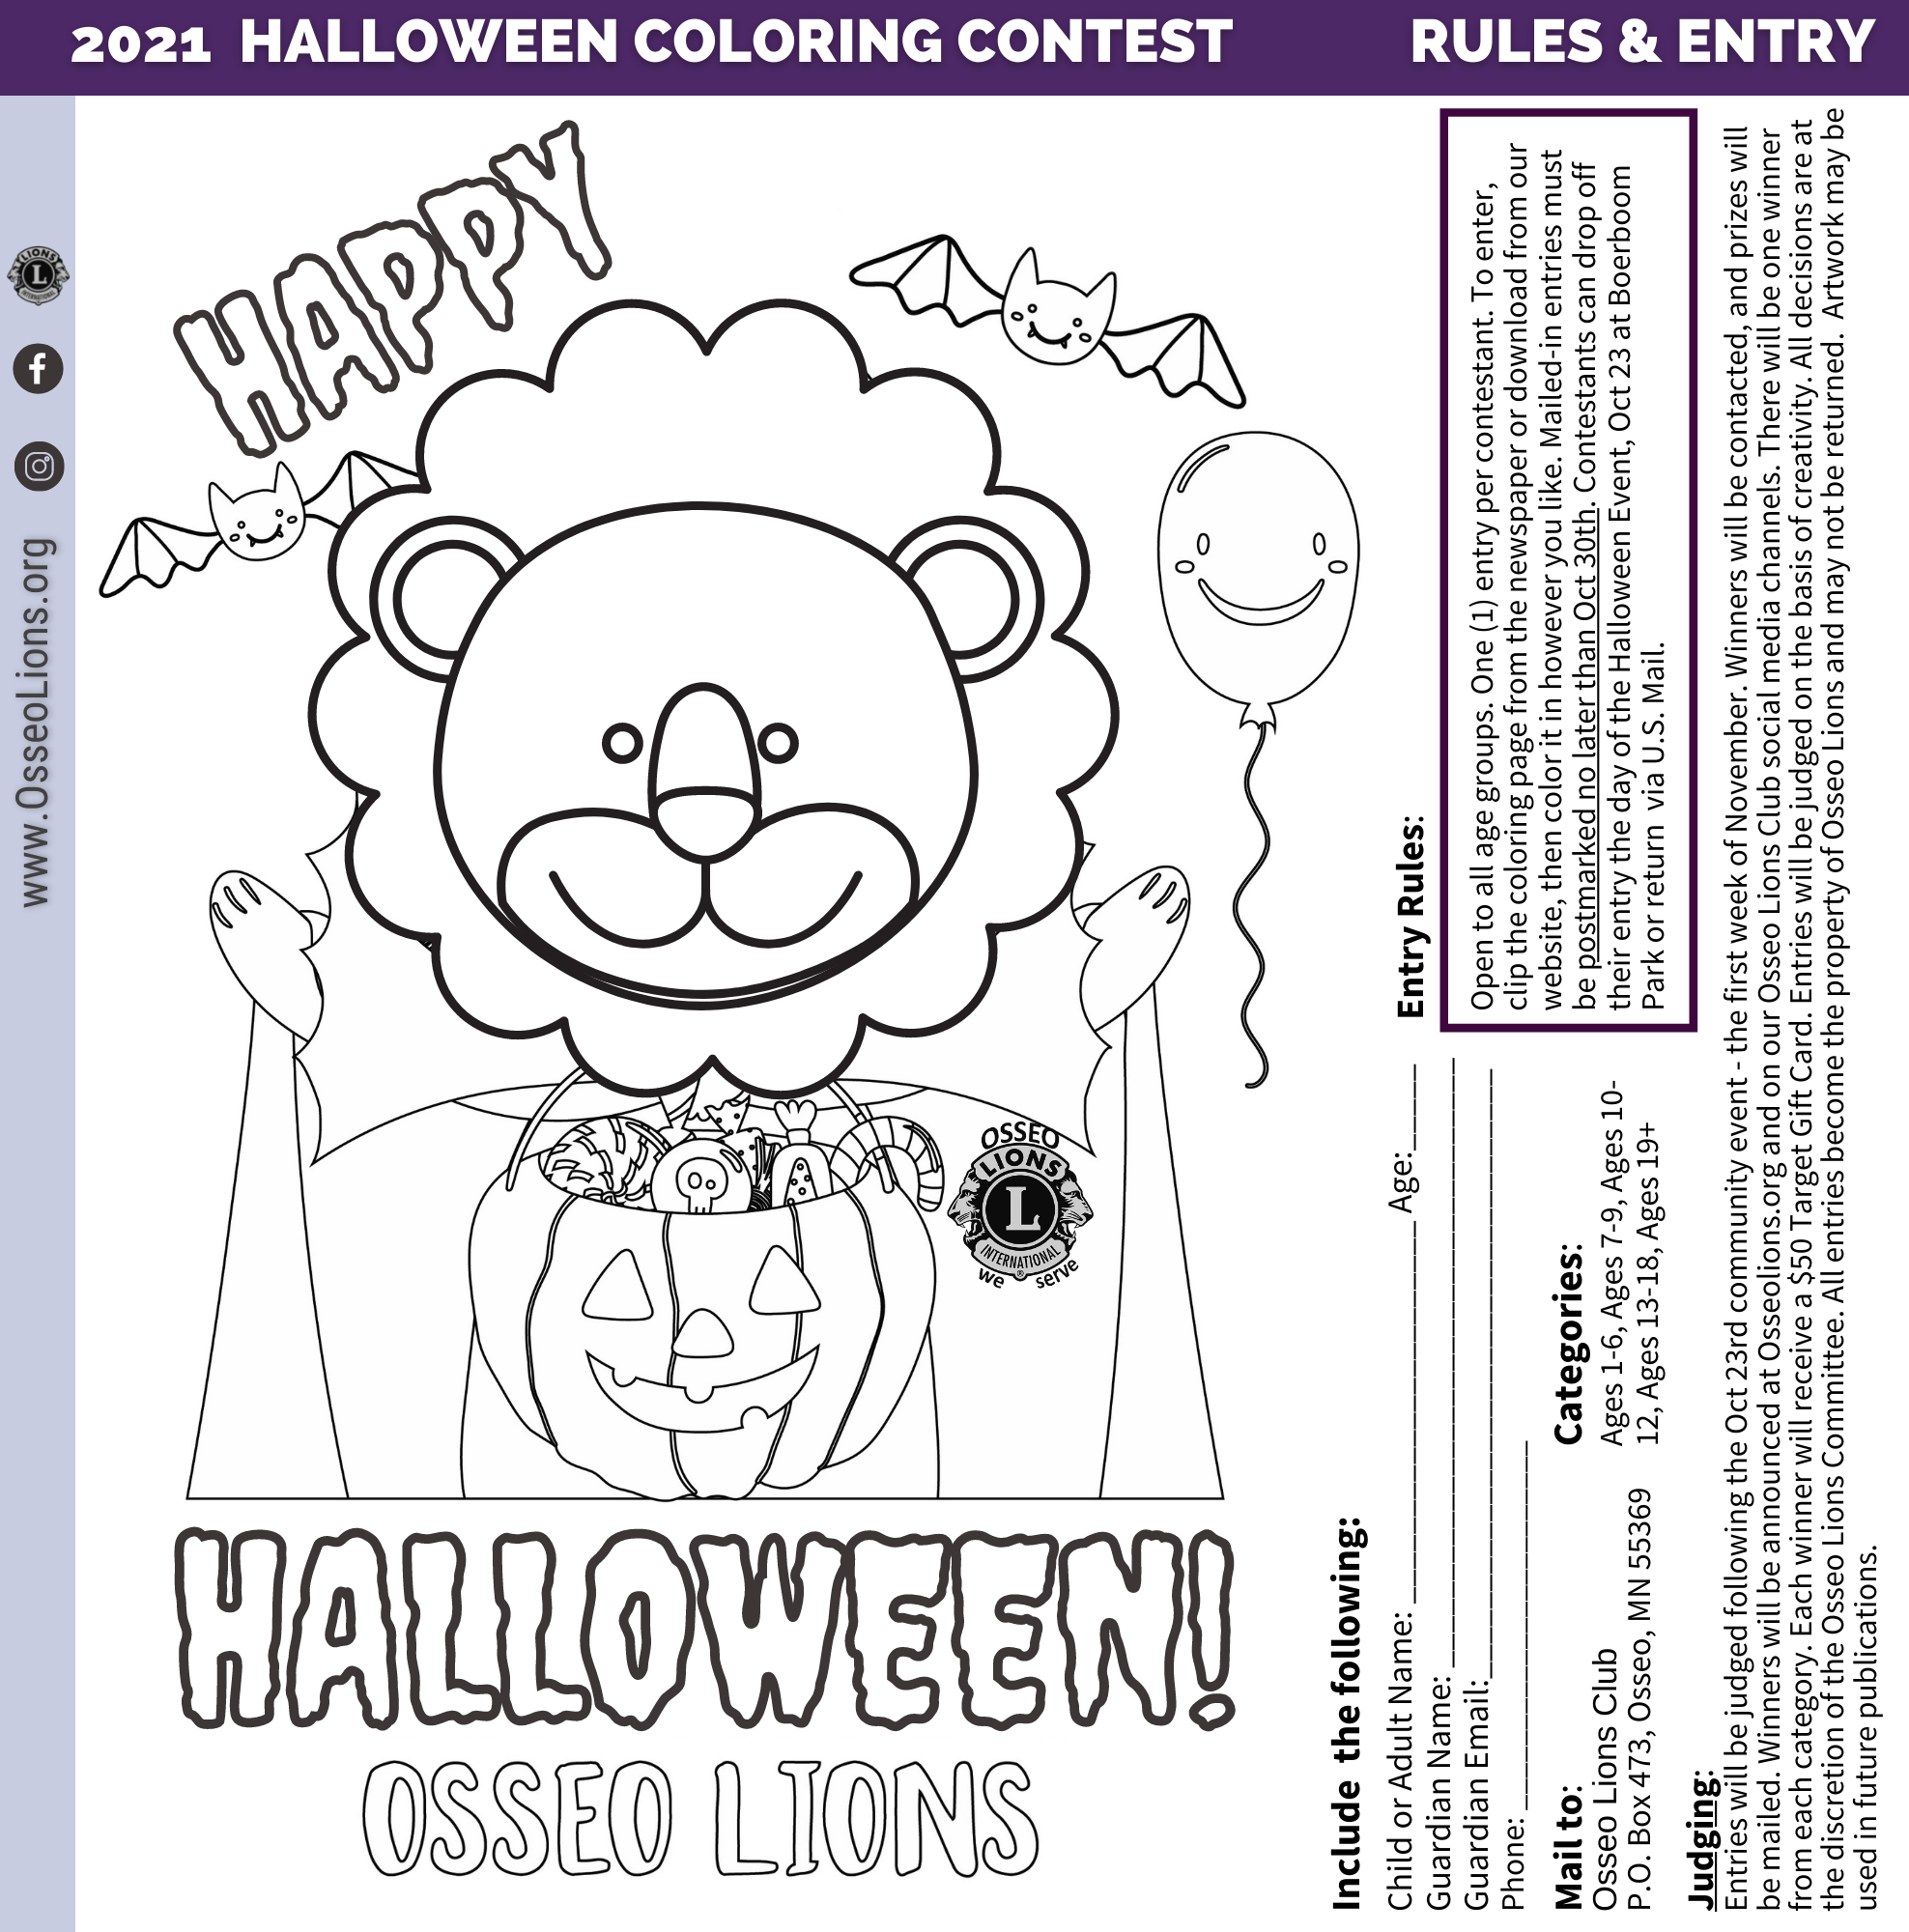 2021 Lions Halloween Coloring Contest